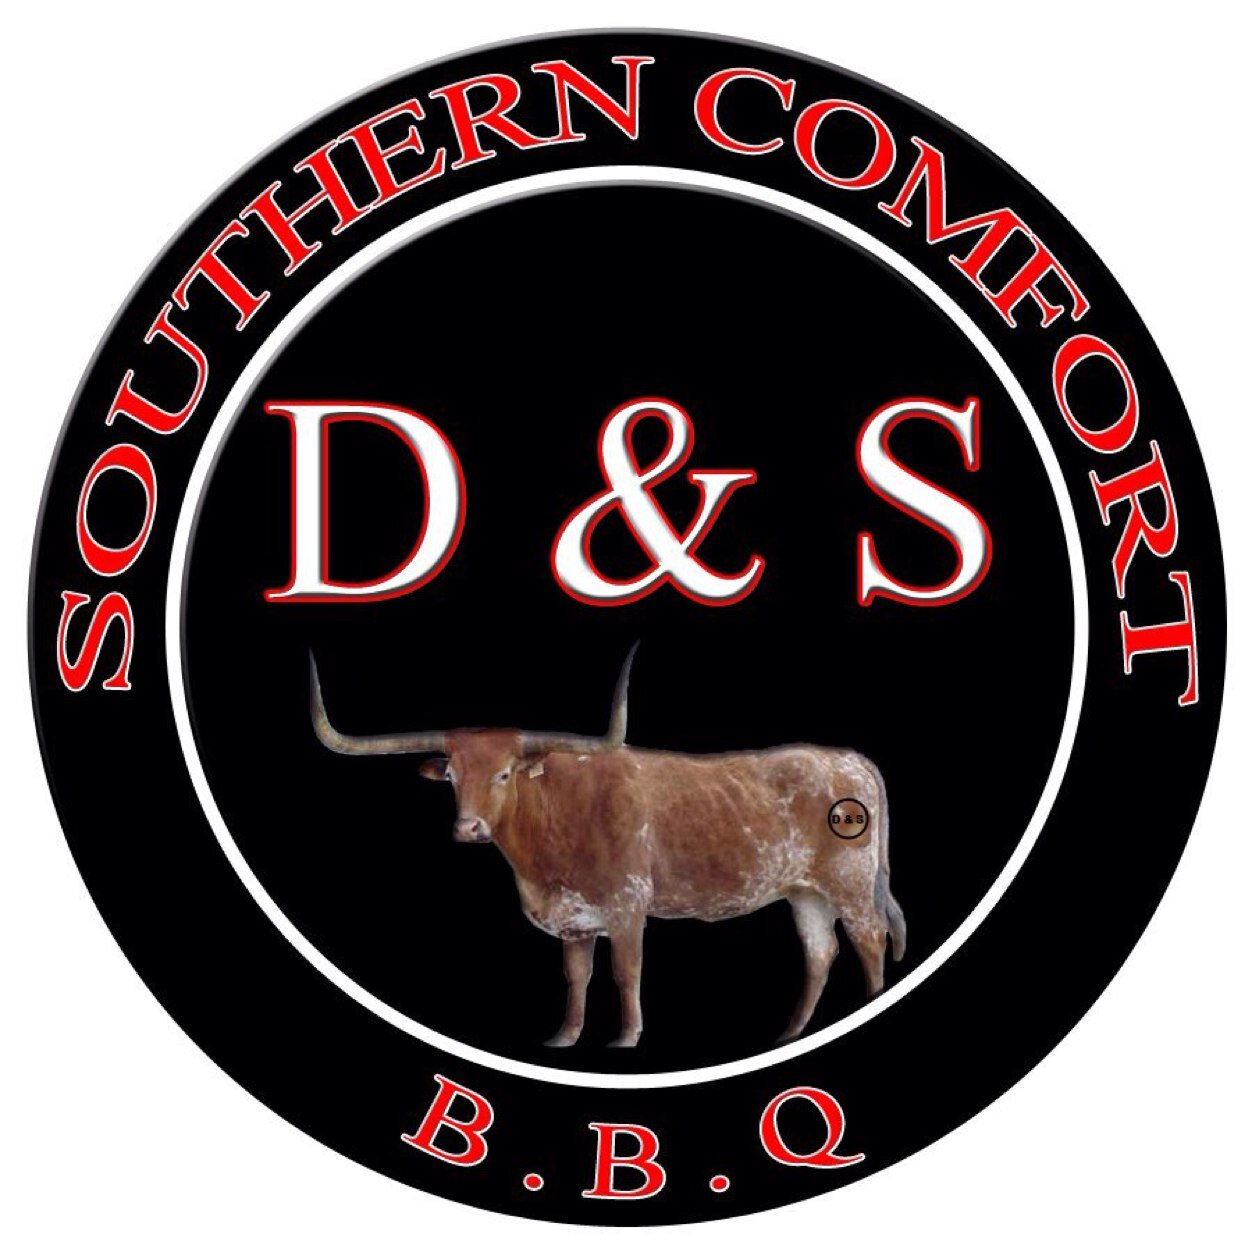 D&S Southern Comfort